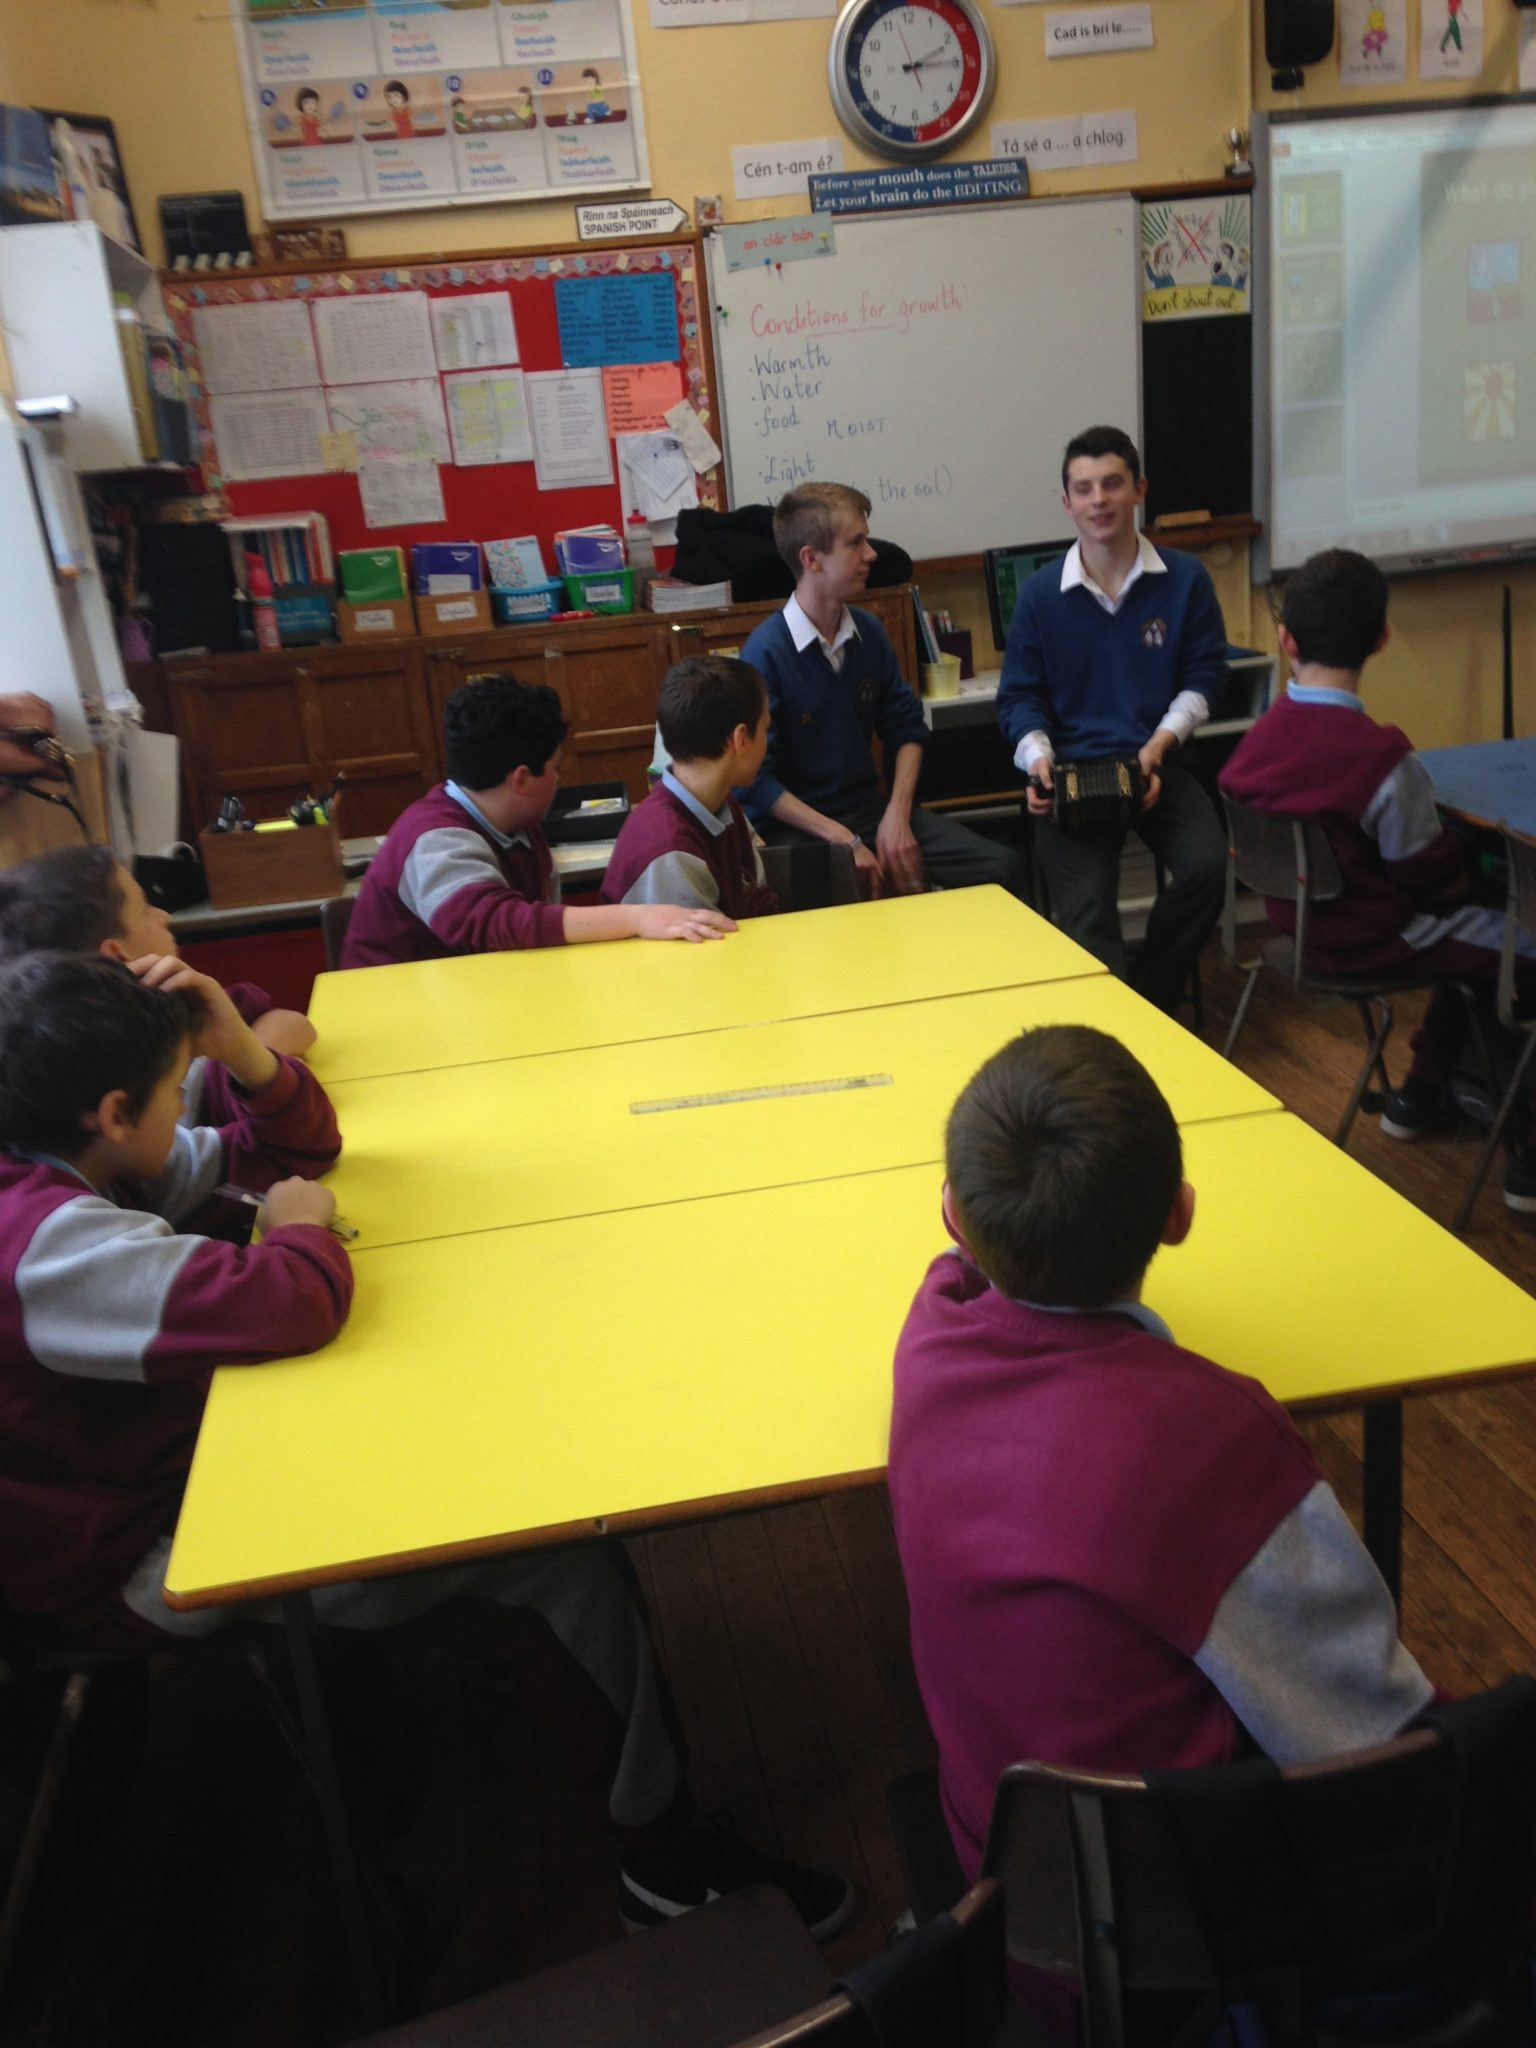 Desmond College Students visiting Locally Primary Schools